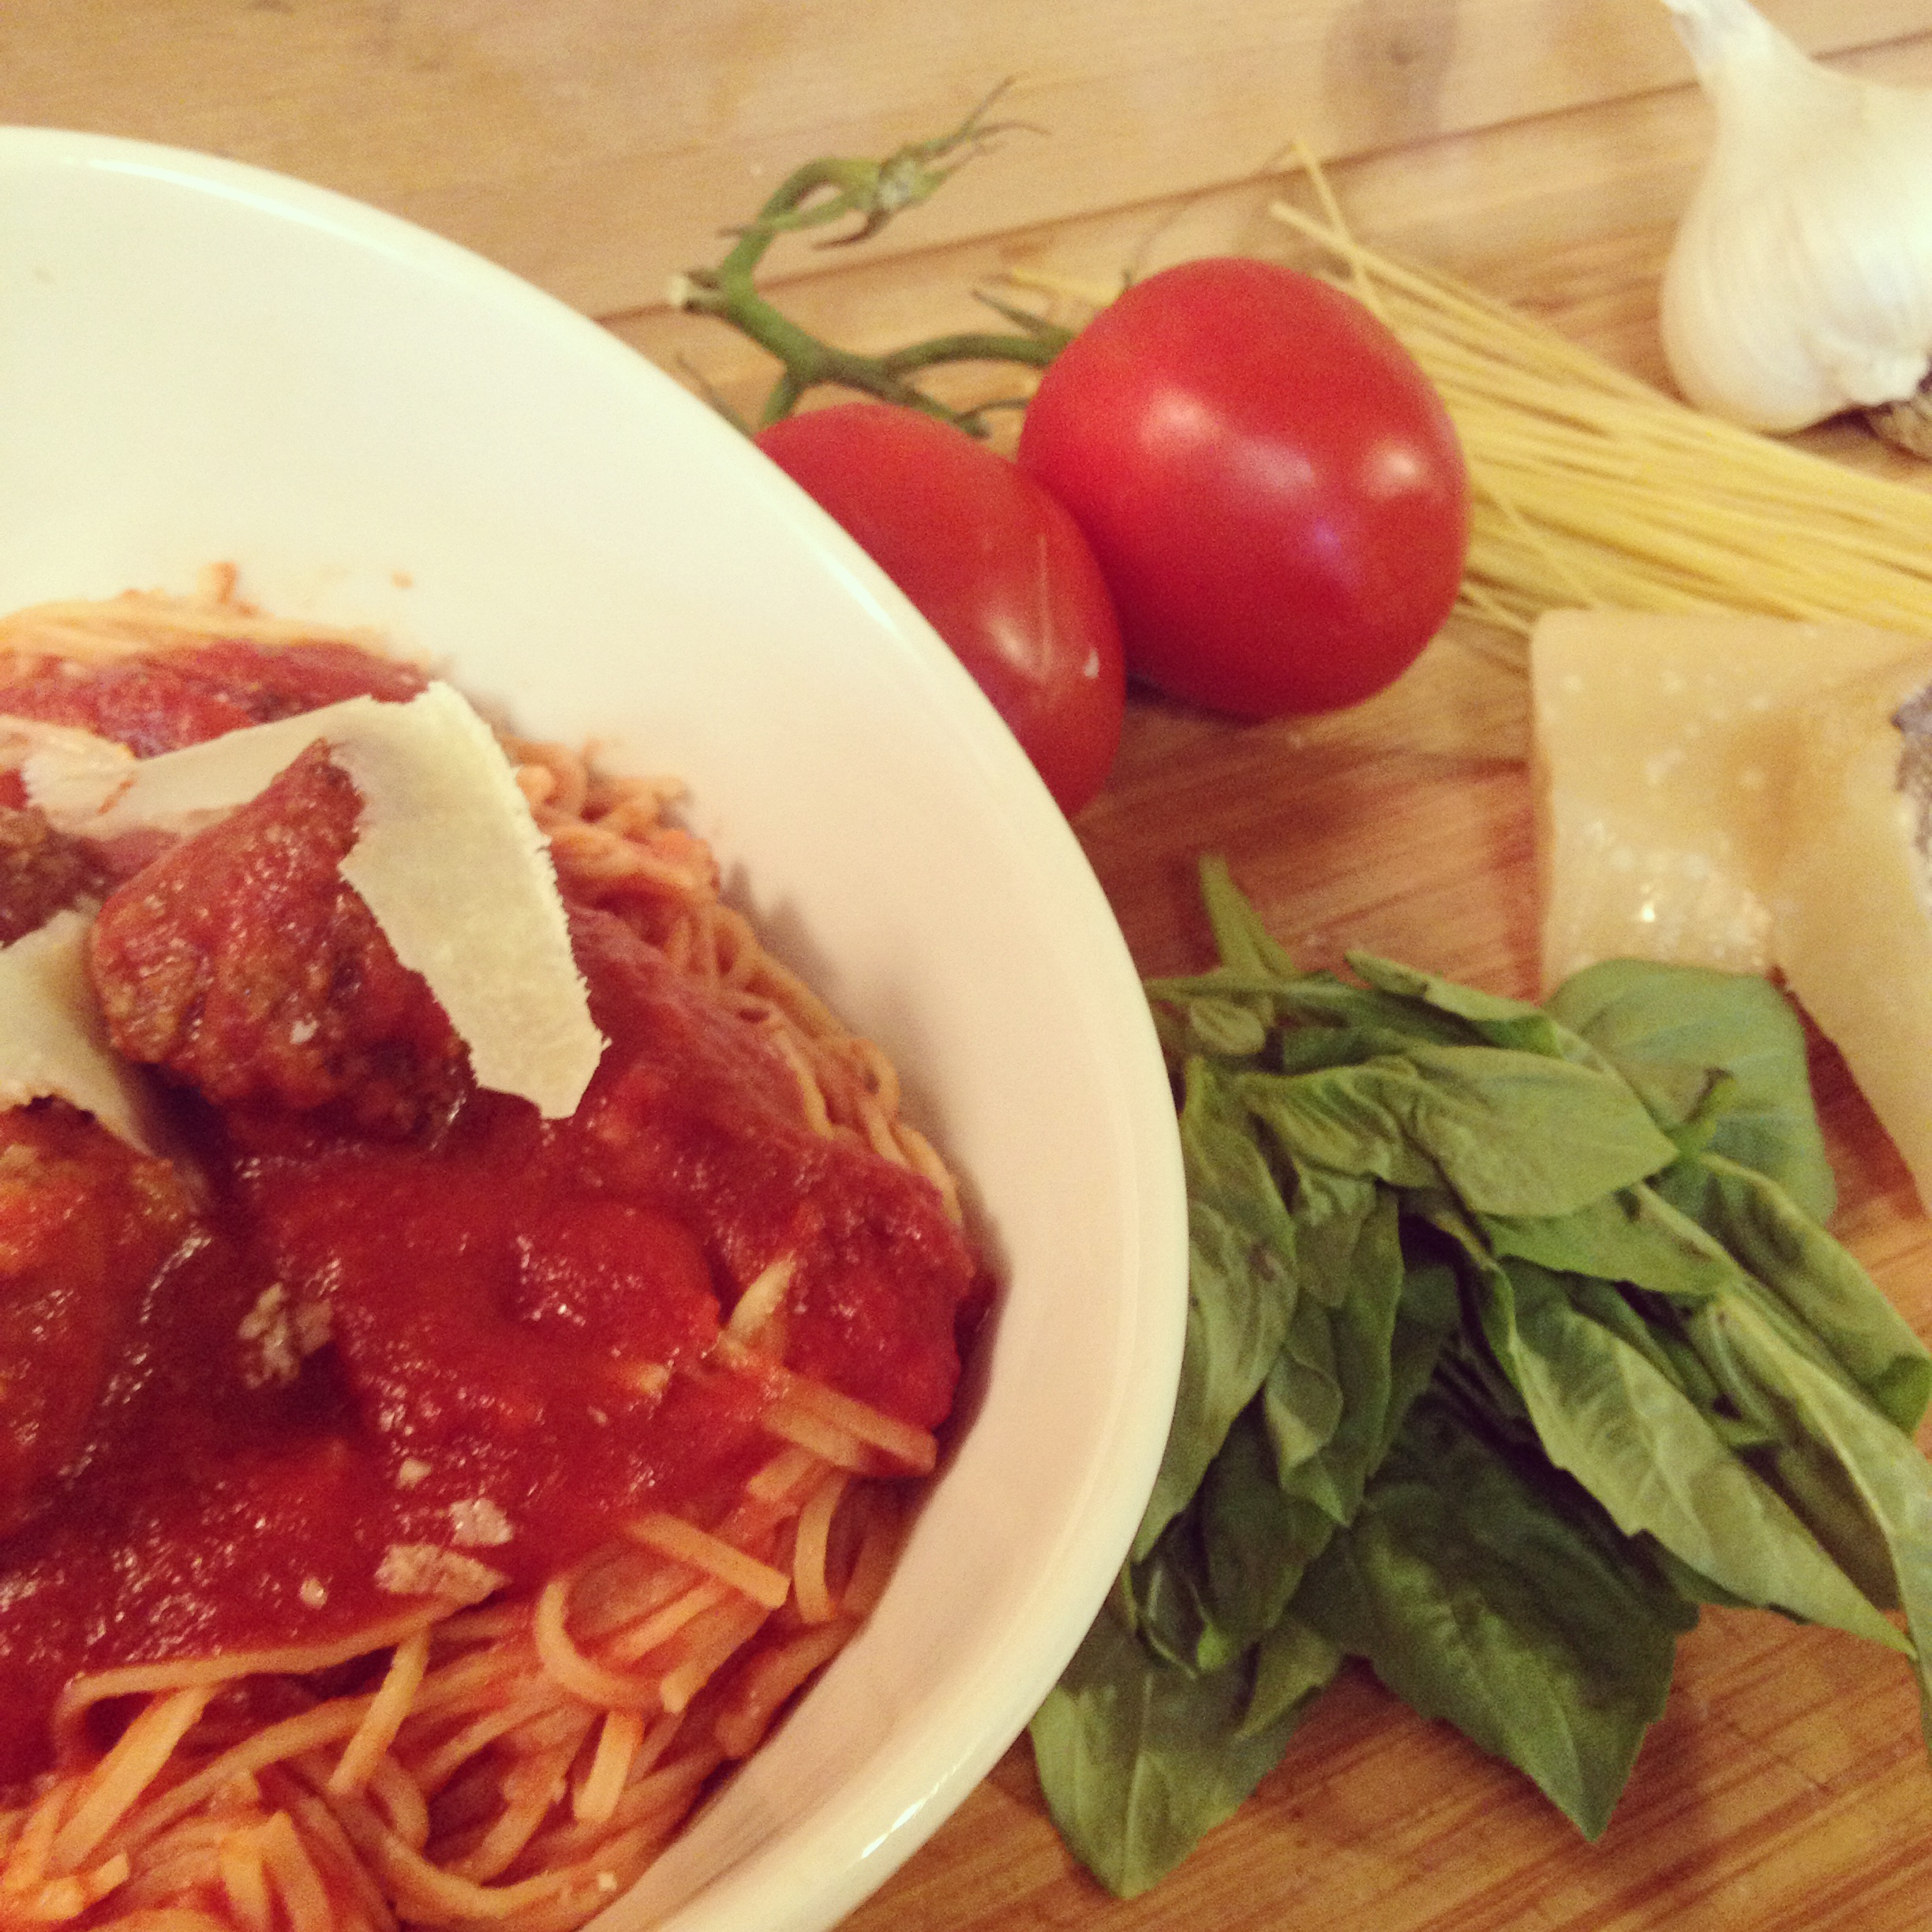 January 4th Is National Spaghetti Day!  Celebrate with Homemade Spaghetti and Crockpot Spaghetti Sauce!